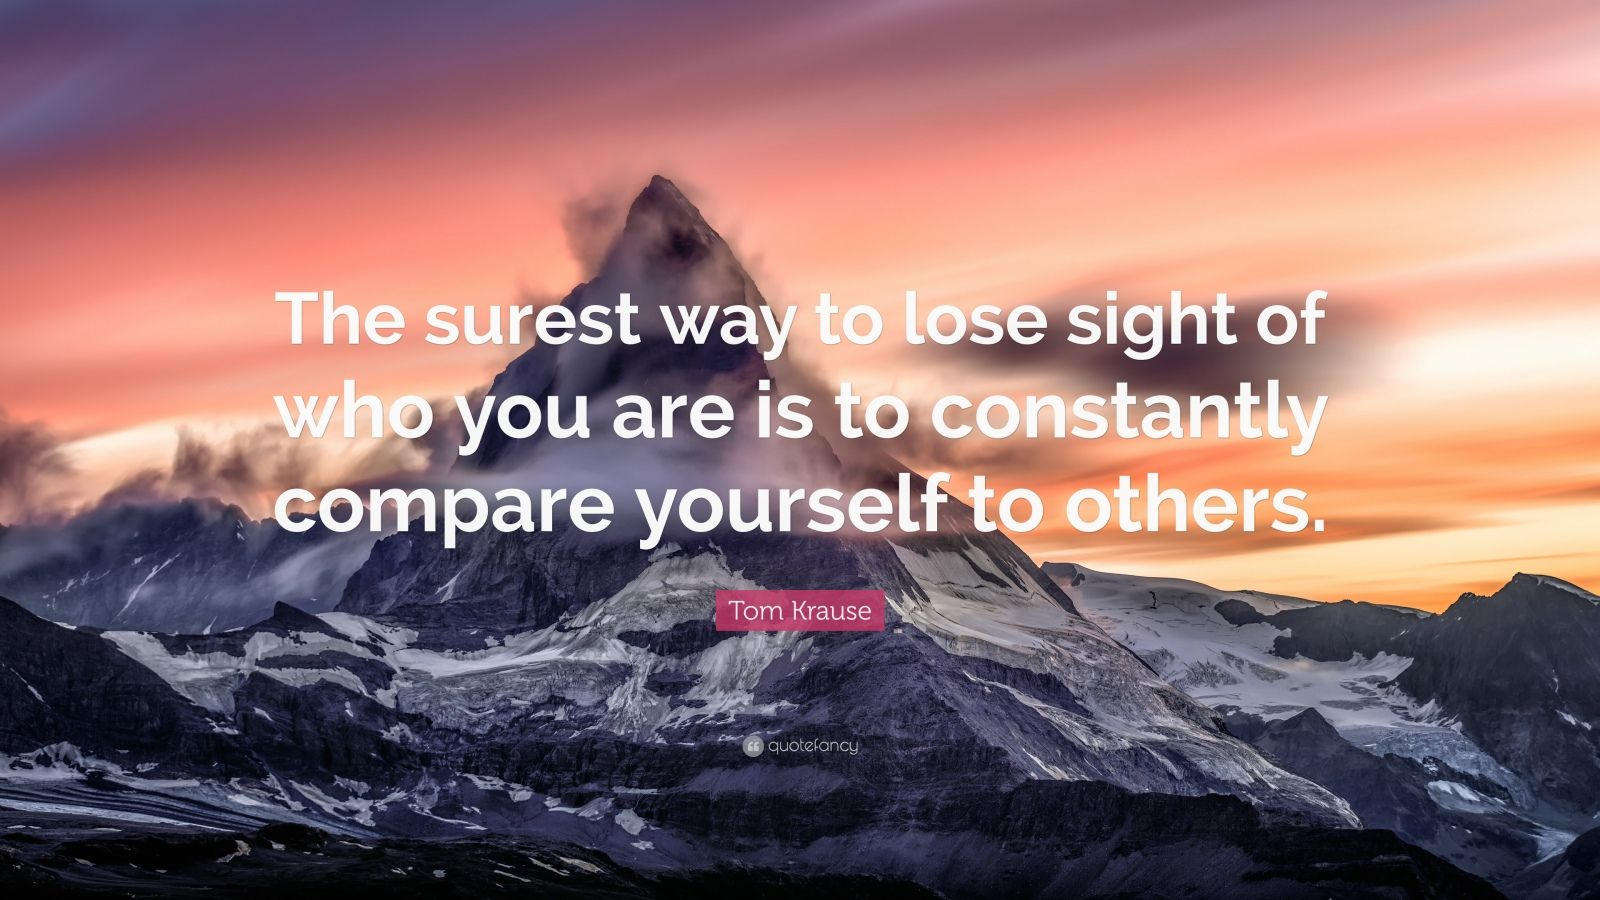 """Tom Krause Quote: """"The surest way to lose sight of who you are is to constantly compare yourself to others."""""""